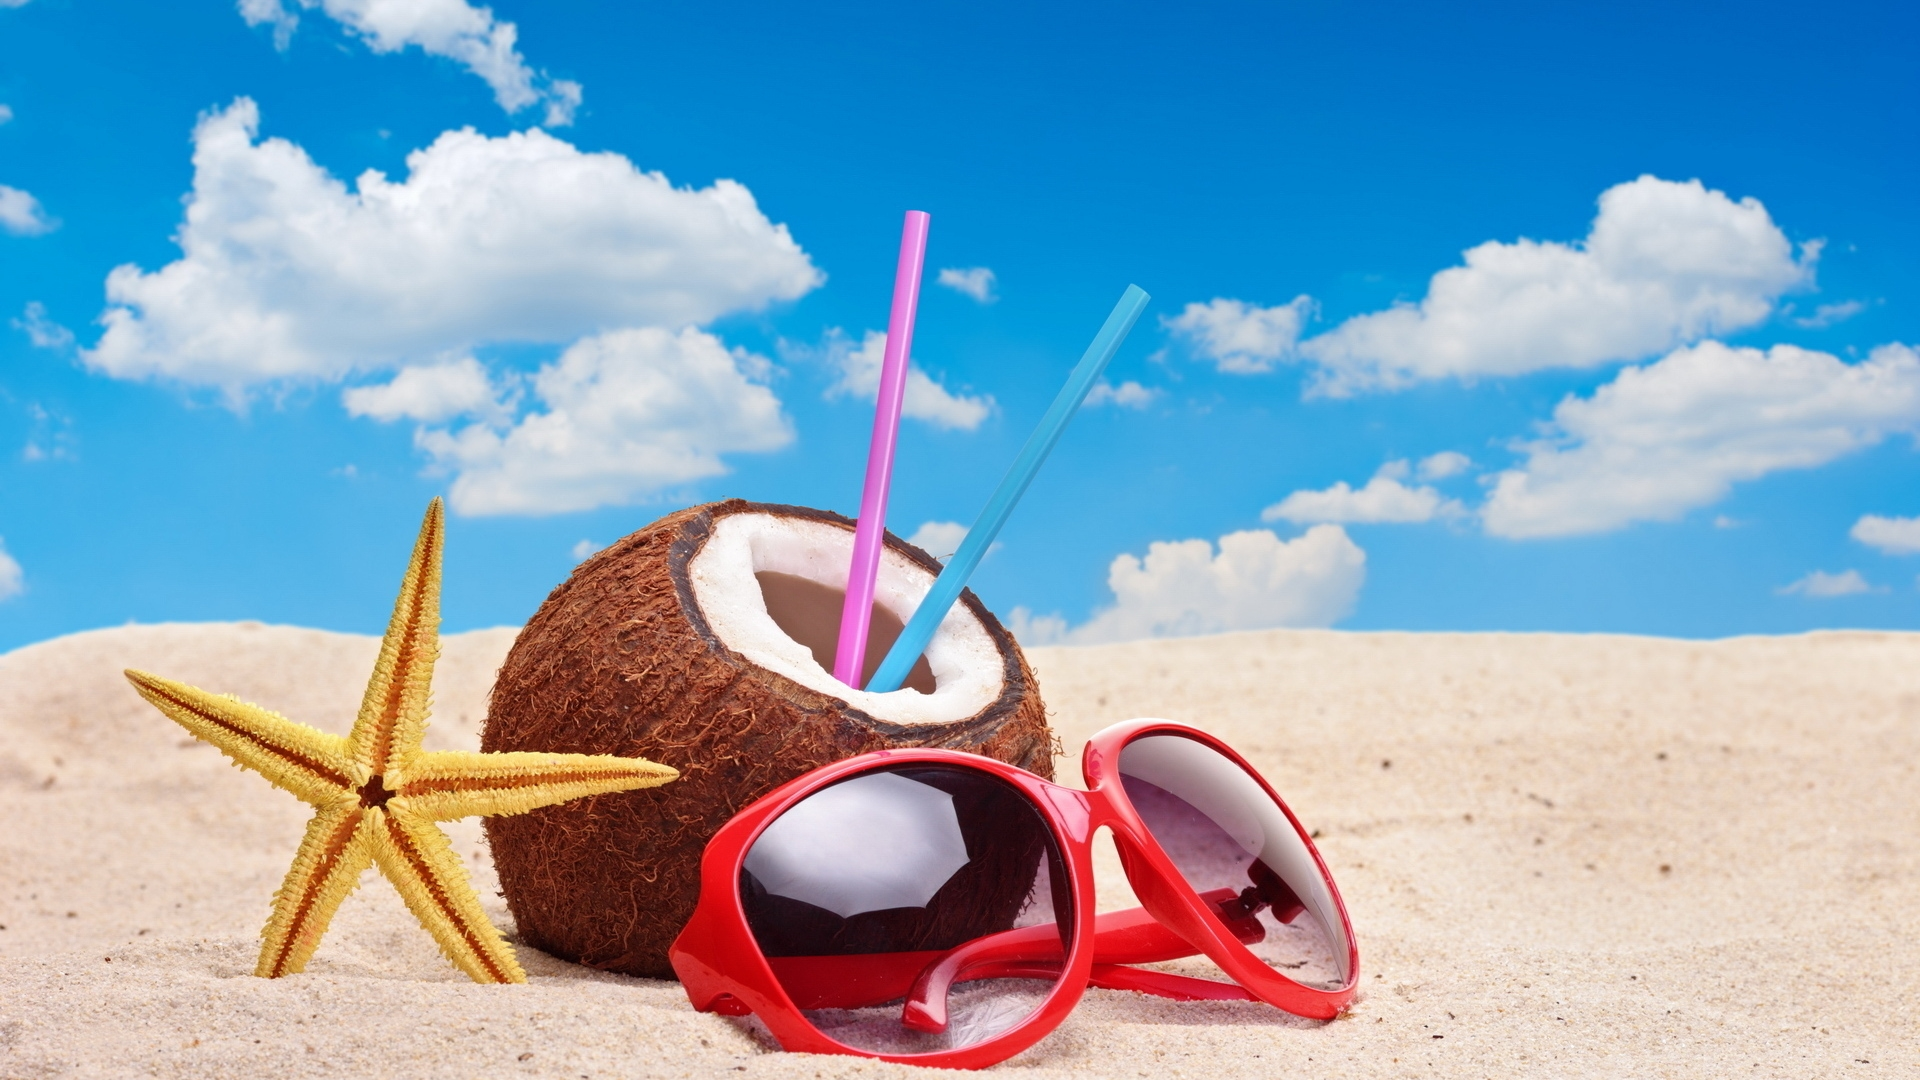 Colourful Summer Accessories for 1920 x 1080 HDTV 1080p resolution